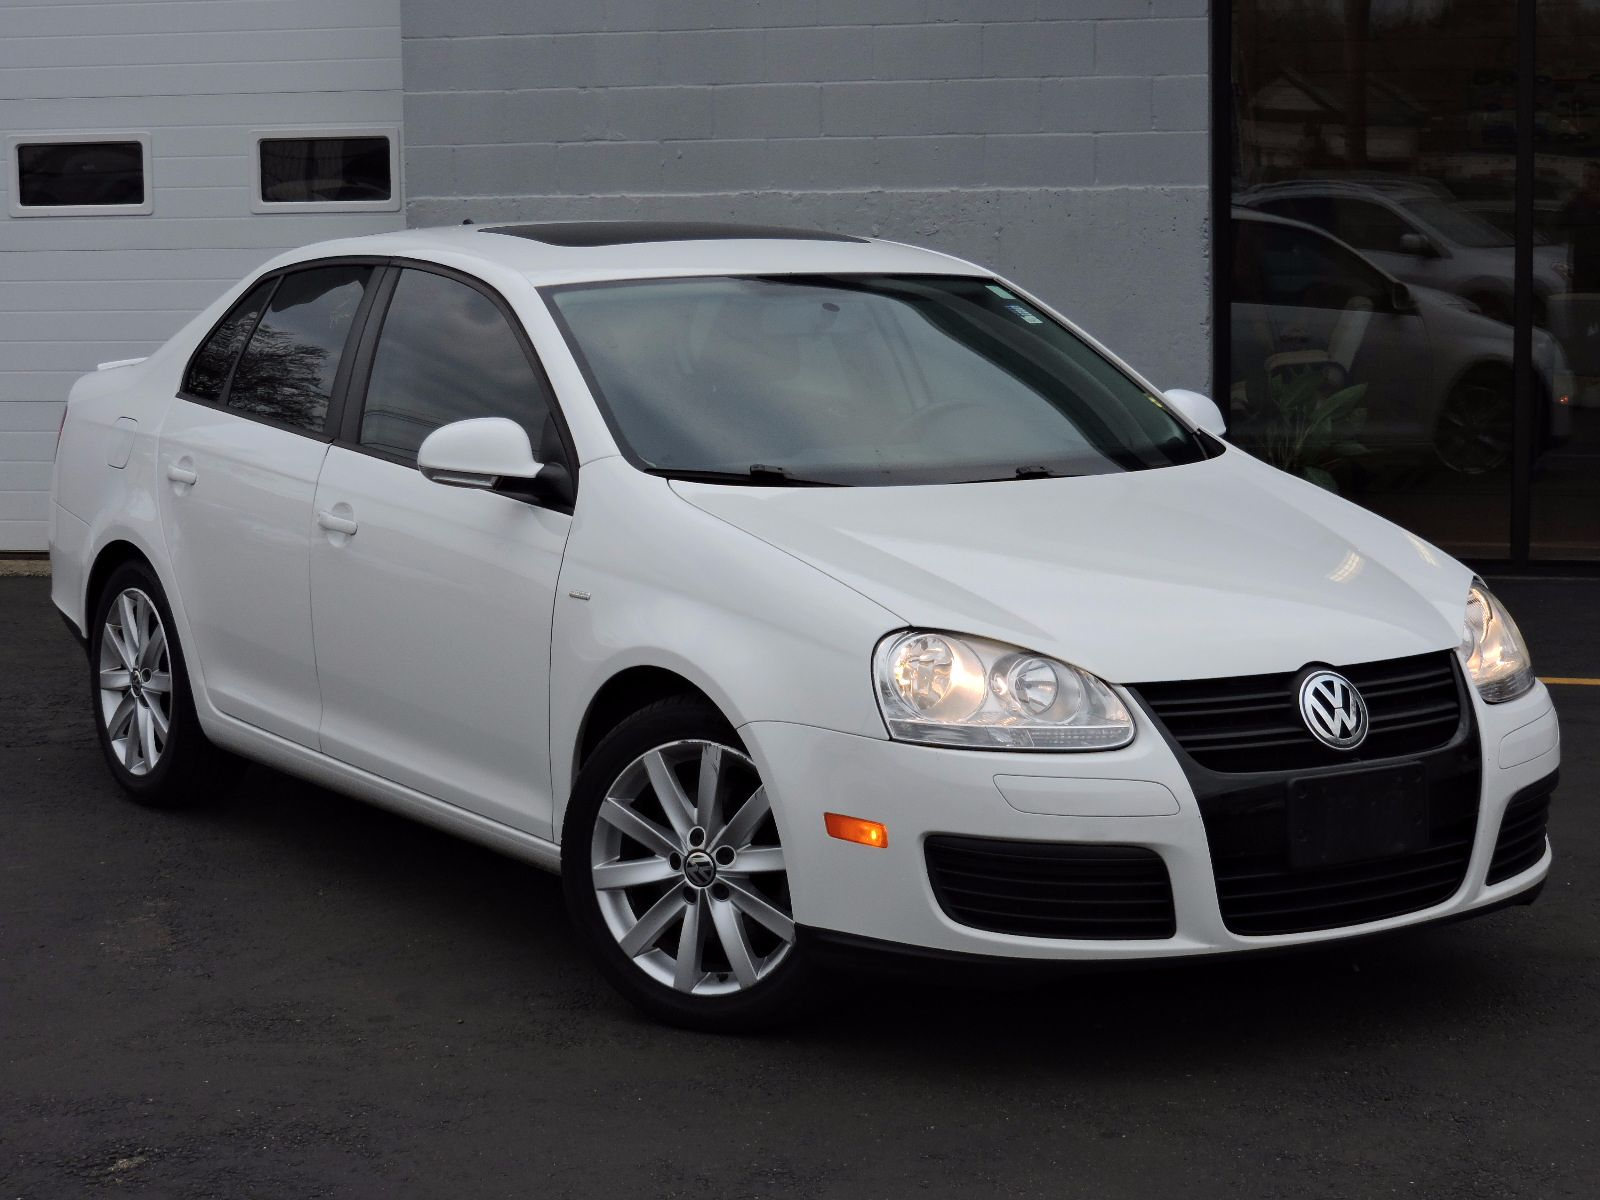 used 2010 volkswagen jetta sedan wolfsburg at auto house usa saugus. Black Bedroom Furniture Sets. Home Design Ideas